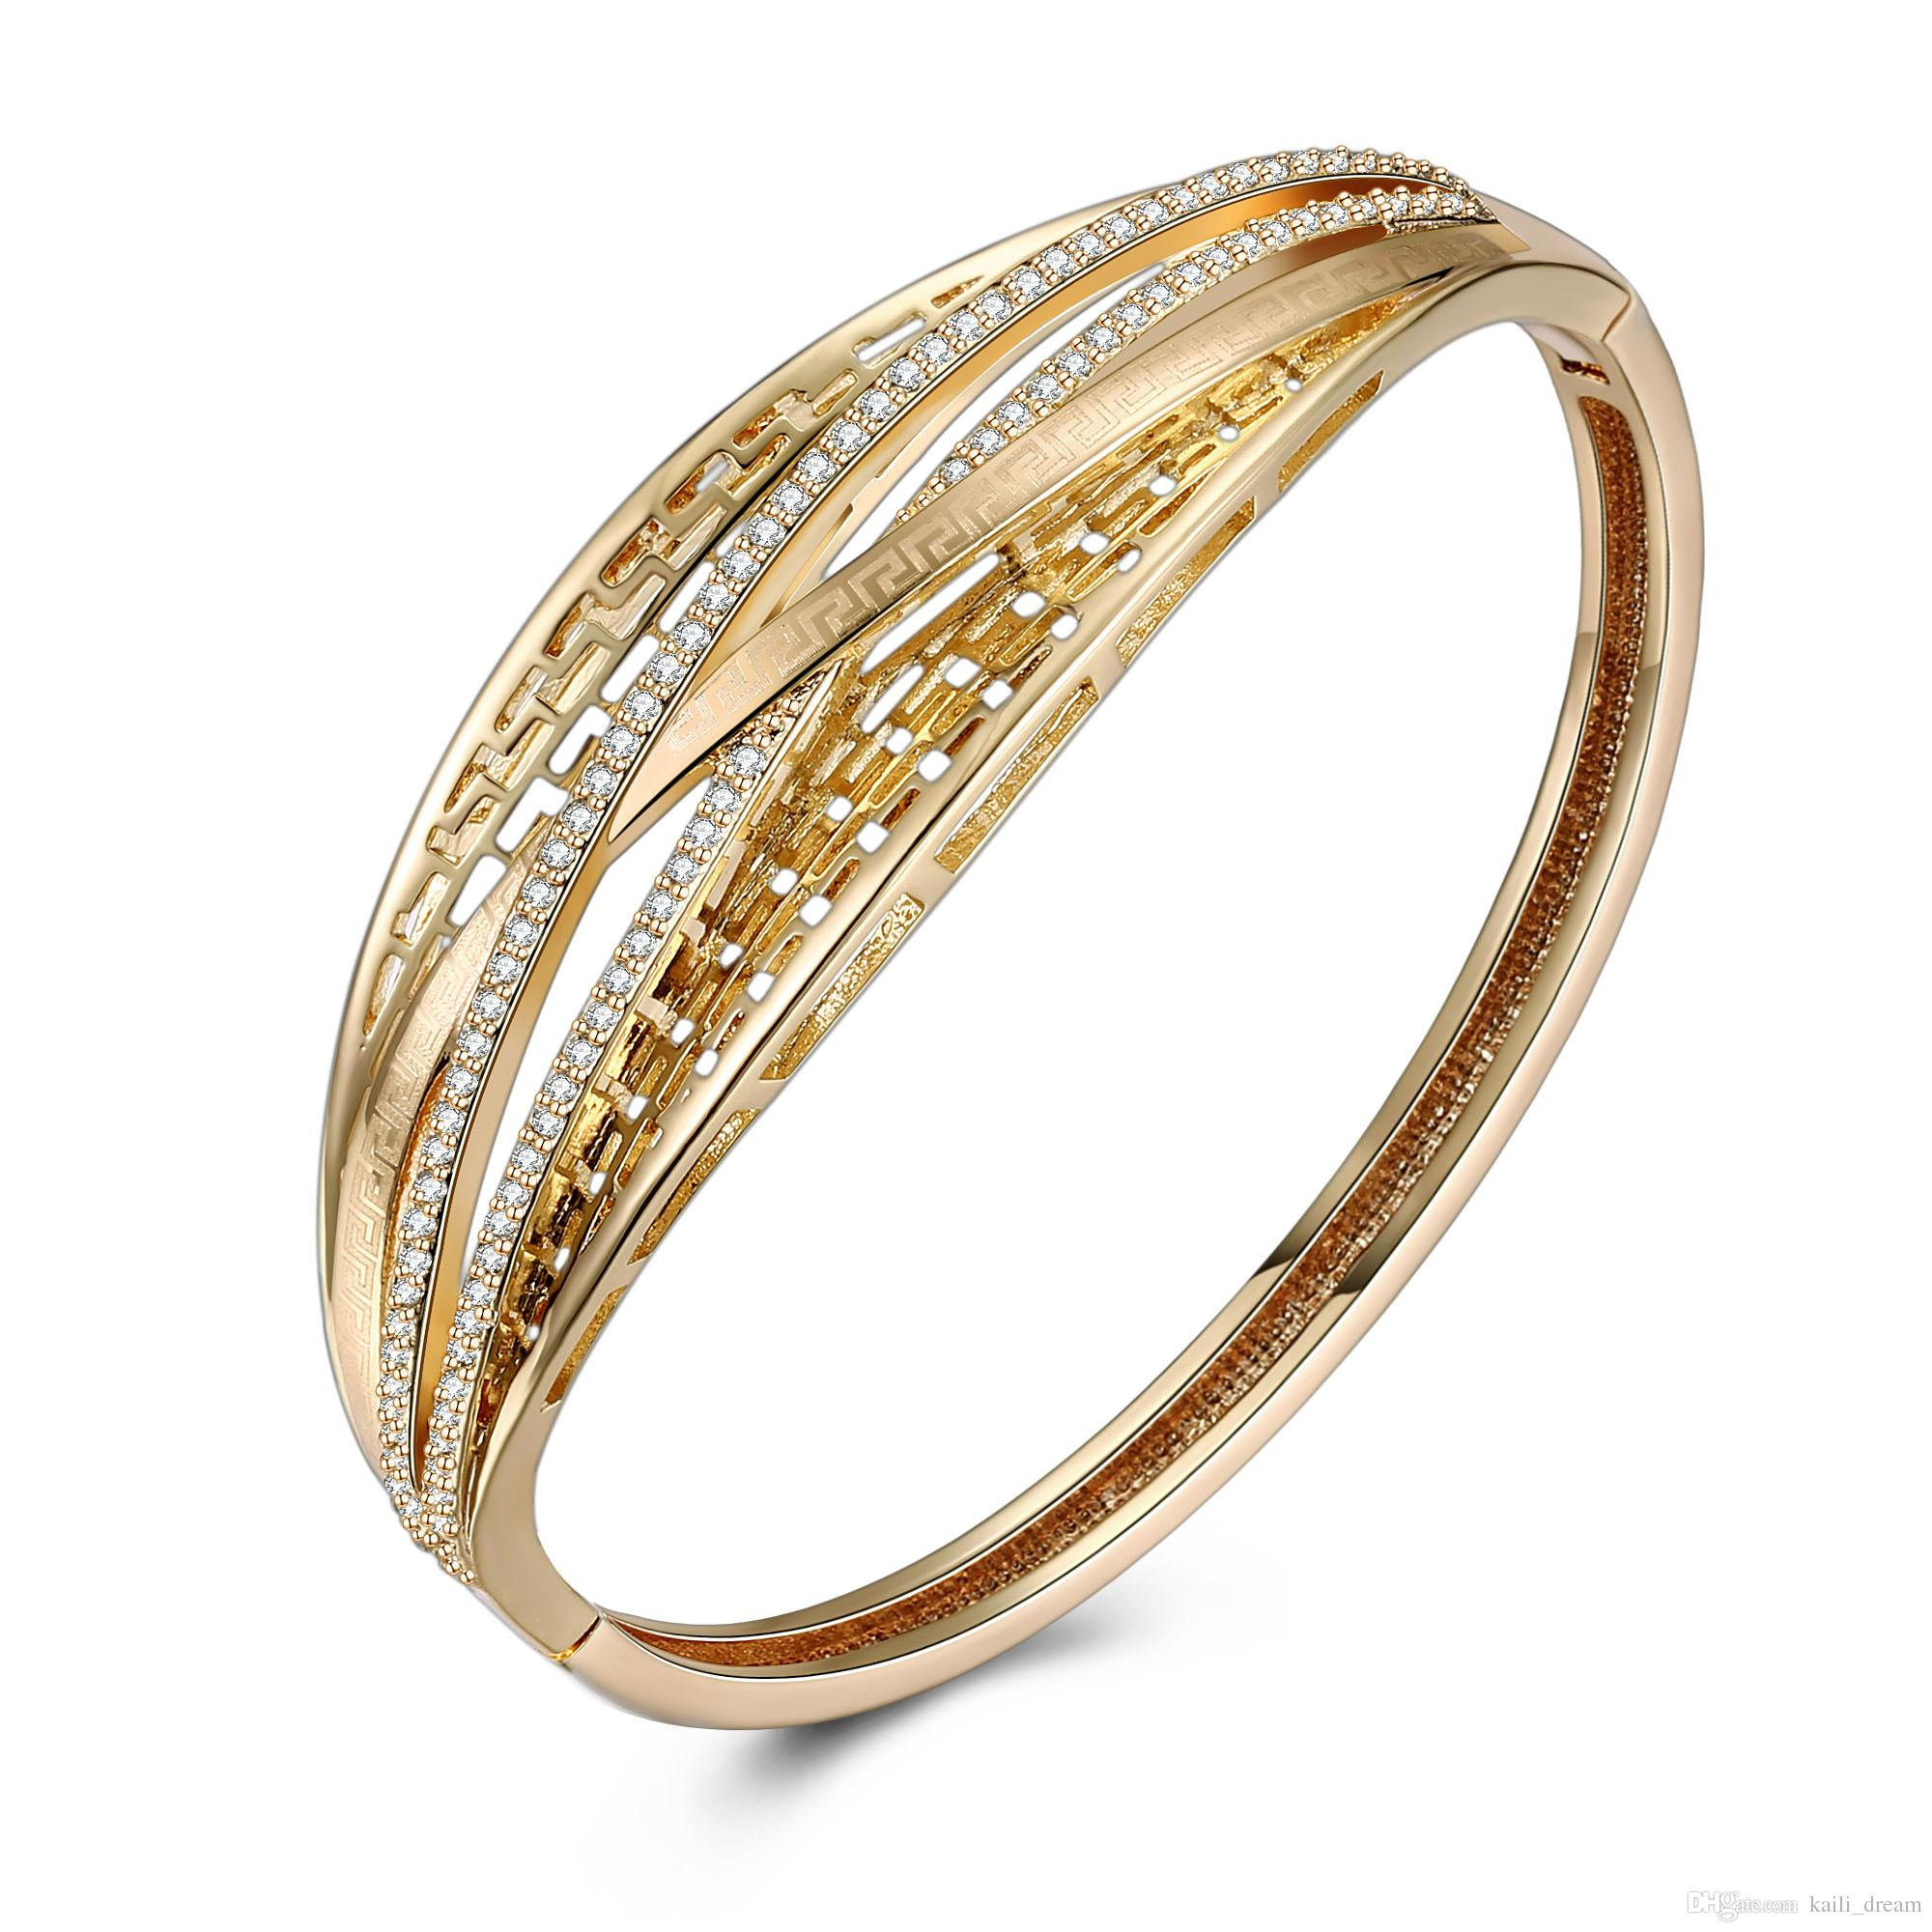 kishore rani rounded gold product bangles sean it rent jewellery